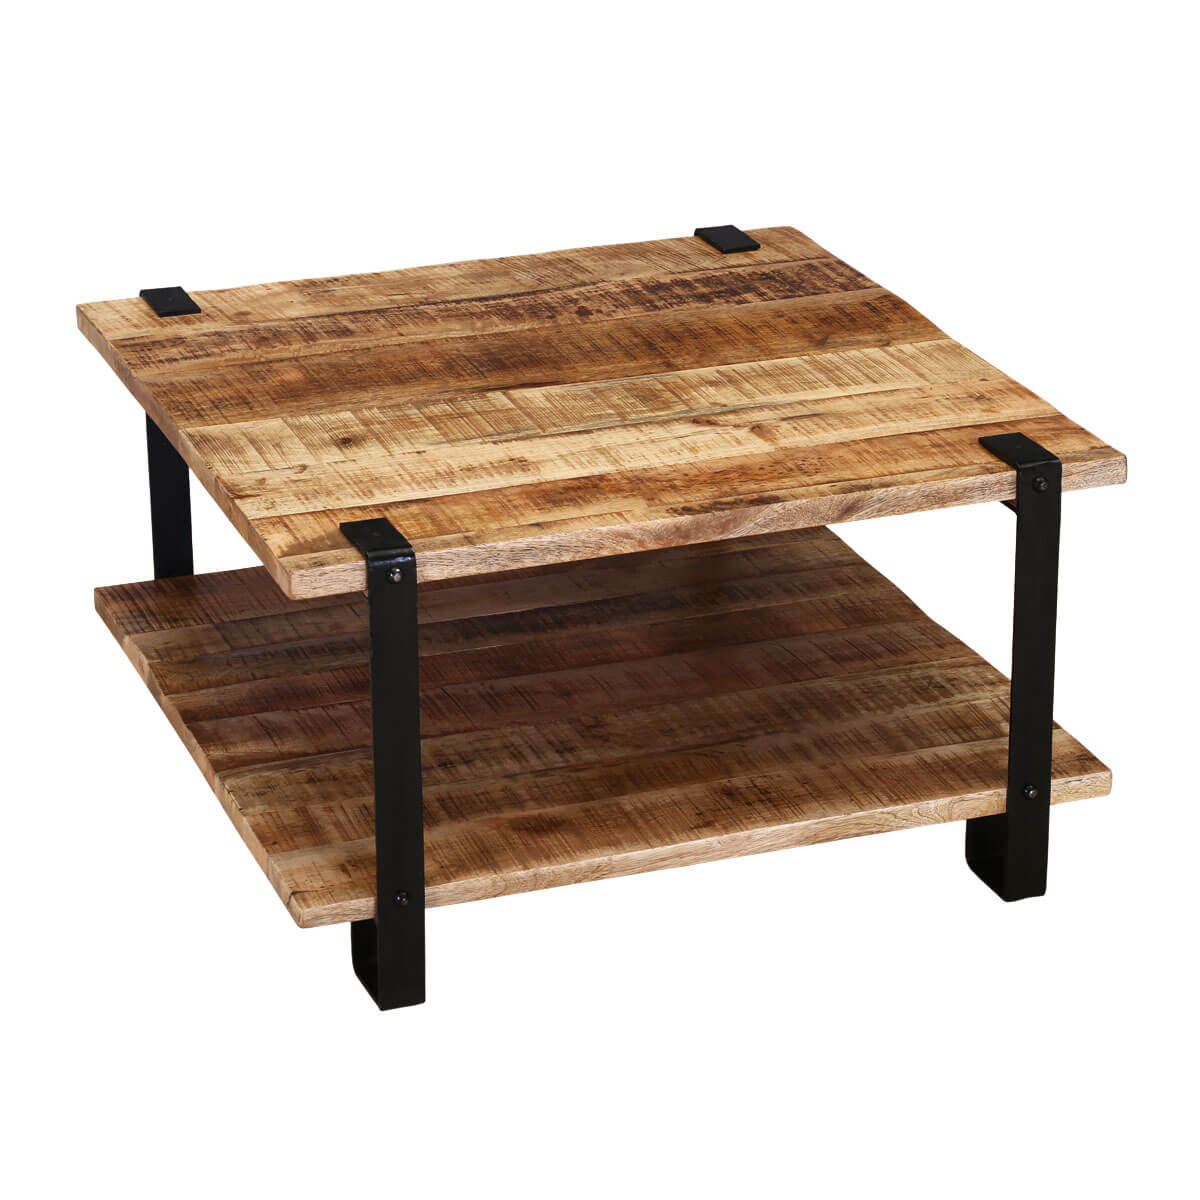 Industrial Coffee Table Roxborough Rustic Industrial Square Coffee Table With Saw